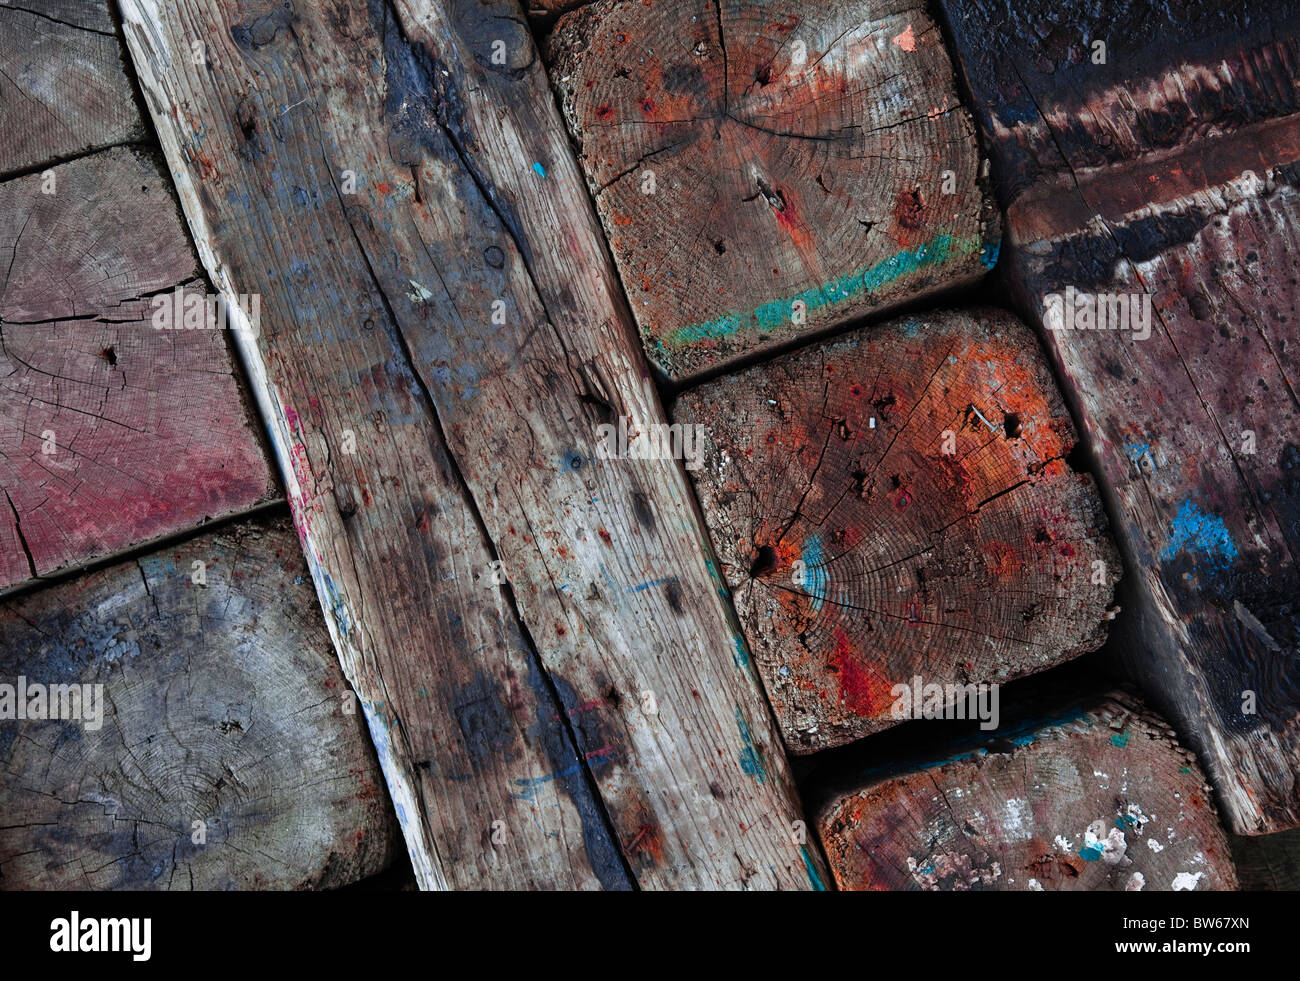 Rough cross cut timber stained with paint and wood stain in a shipyard where it's been stained with paint over - Stock Image